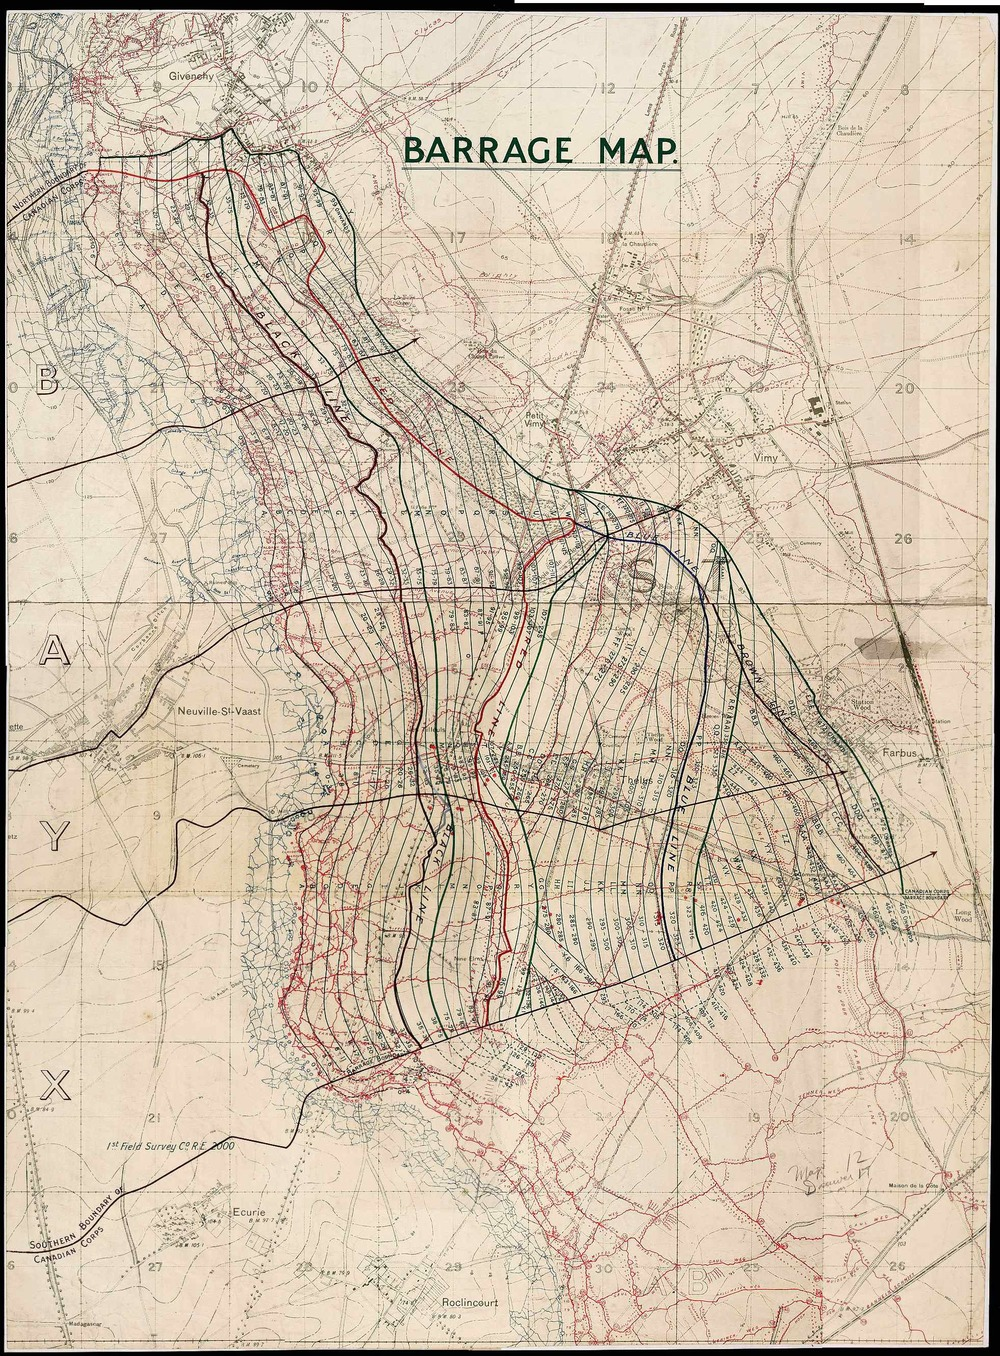 1917 Vimy Ridge Barrage Map